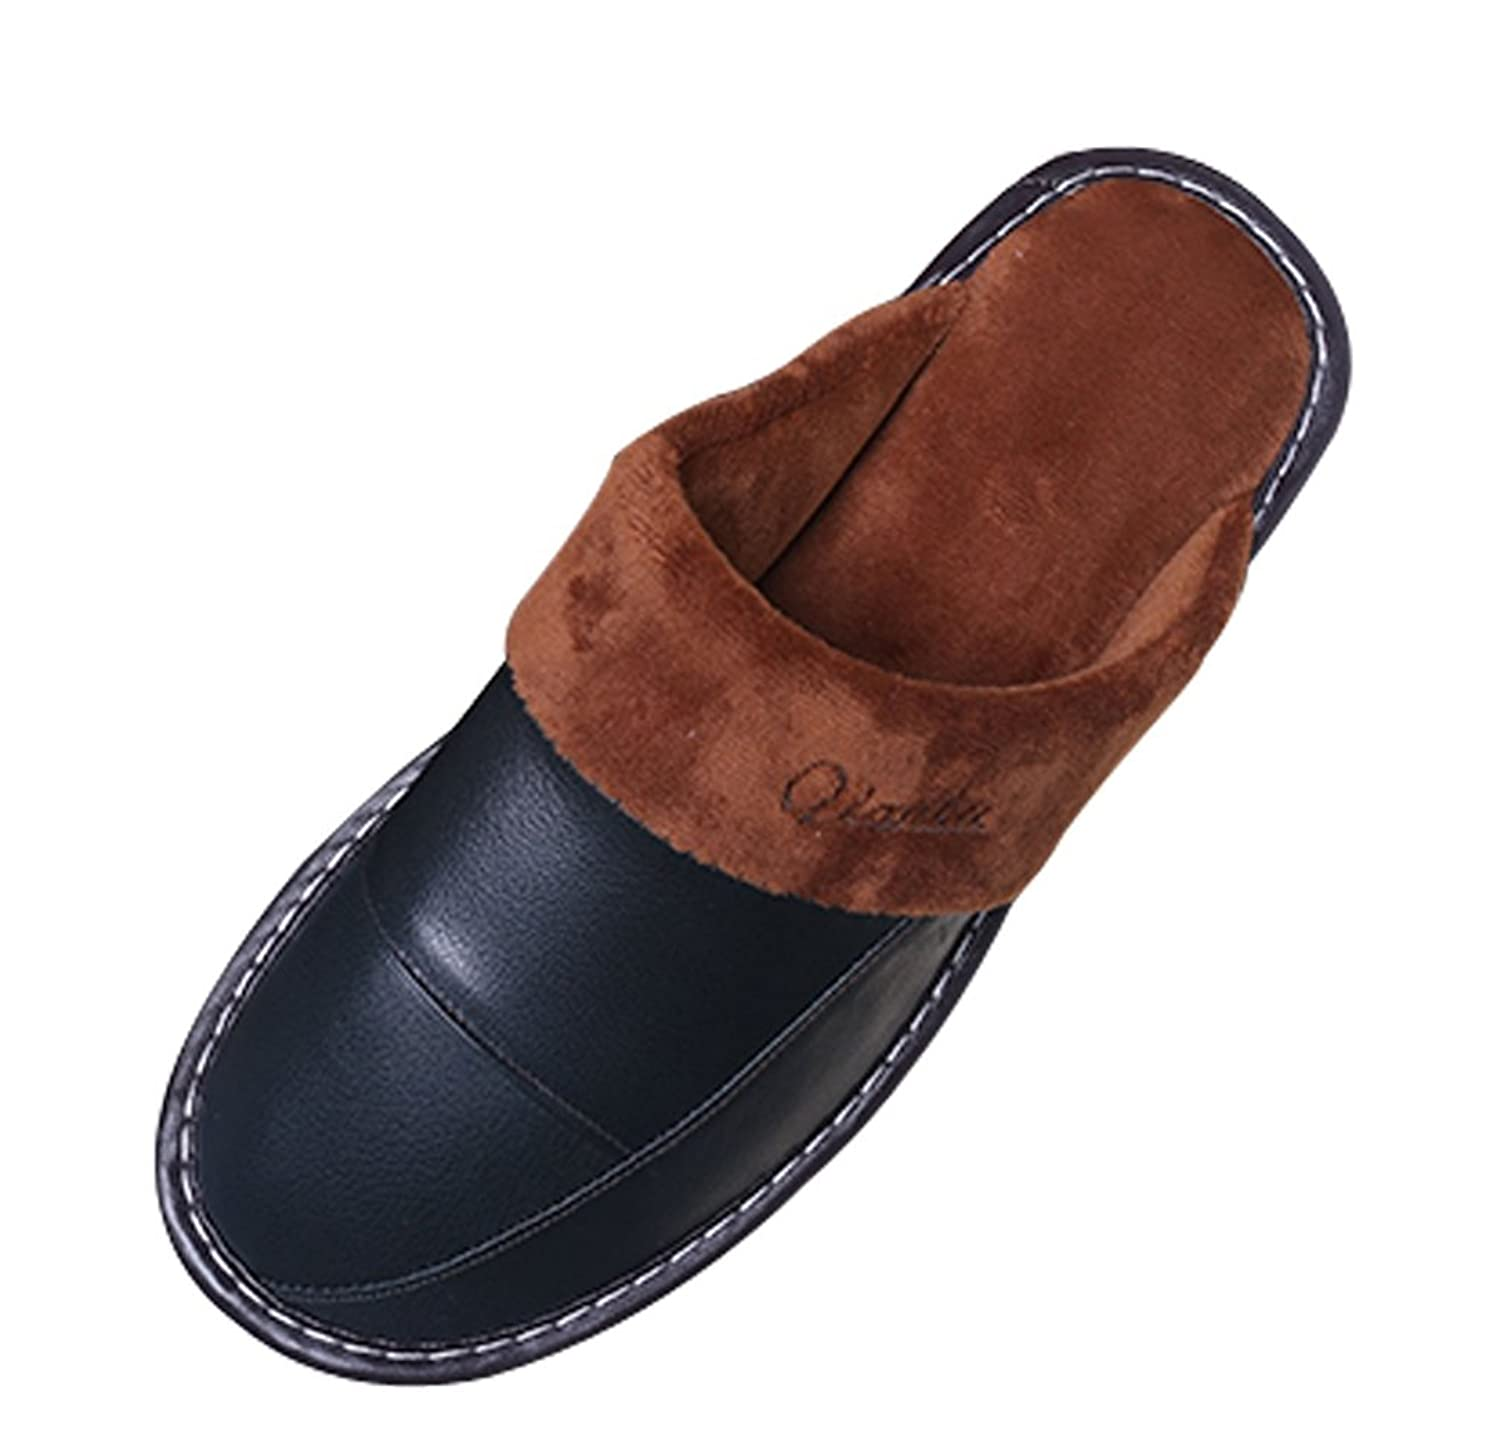 Mens Bedroom Slippers Leather Cattior Mens Fur Lined Indoor Outdoor House Slippers Leather